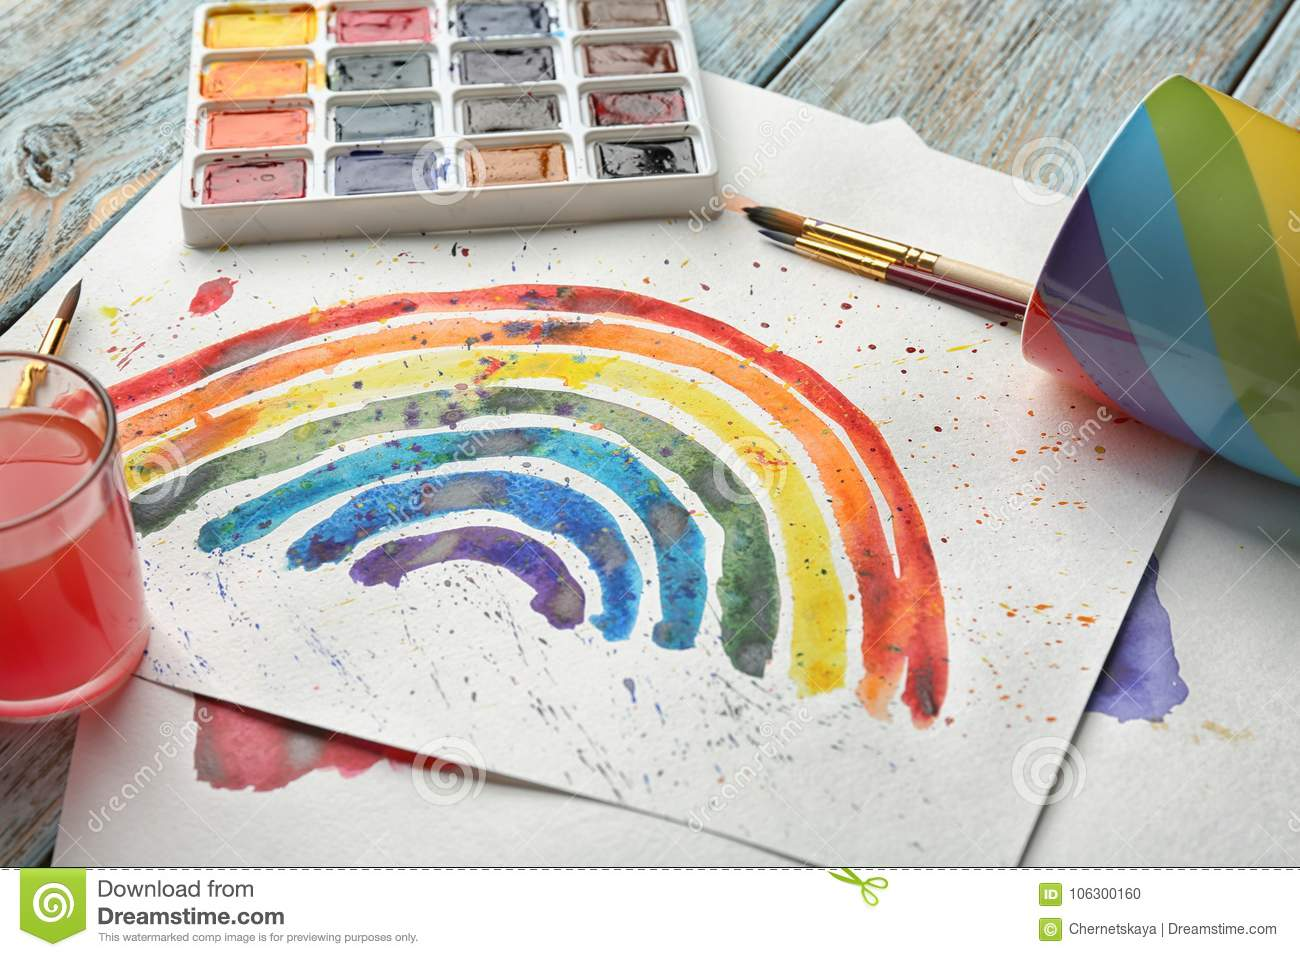 Watercolor Painting Of Rainbow Stock Photo - Image of sheets